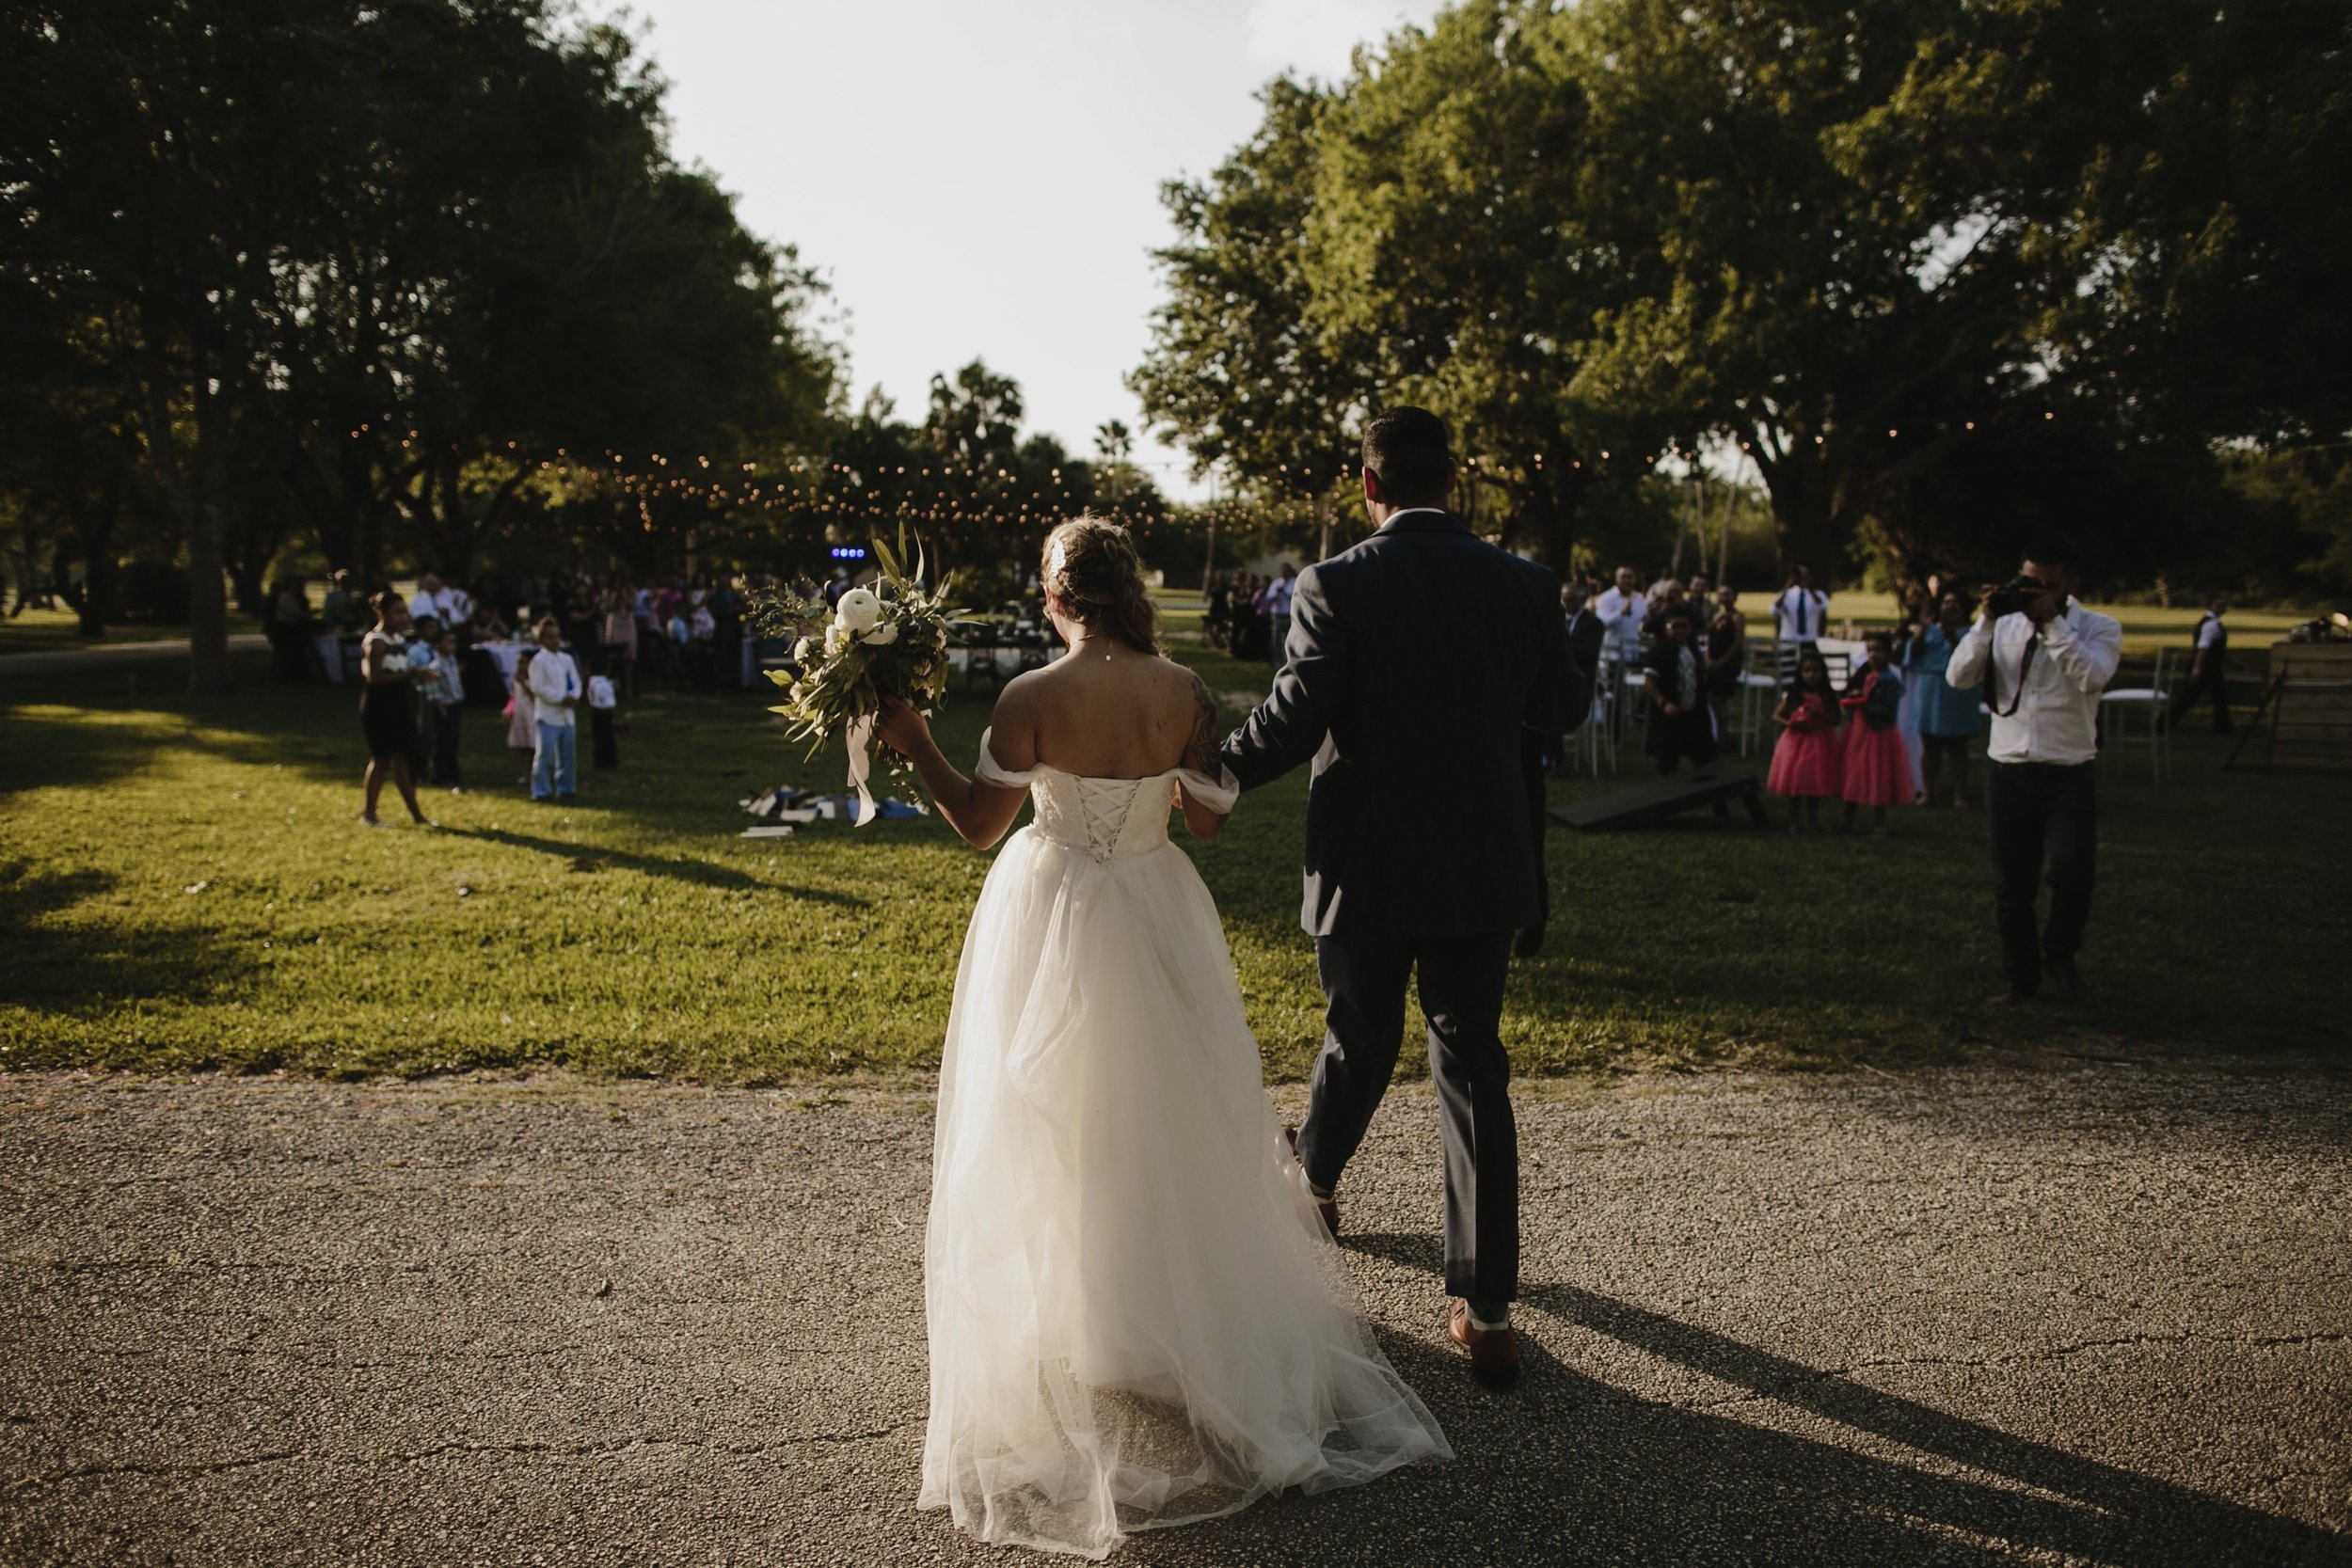 alfonso_flores_destination_wedding_photography_rancho_la_pergola_brownsville_texas48.jpg